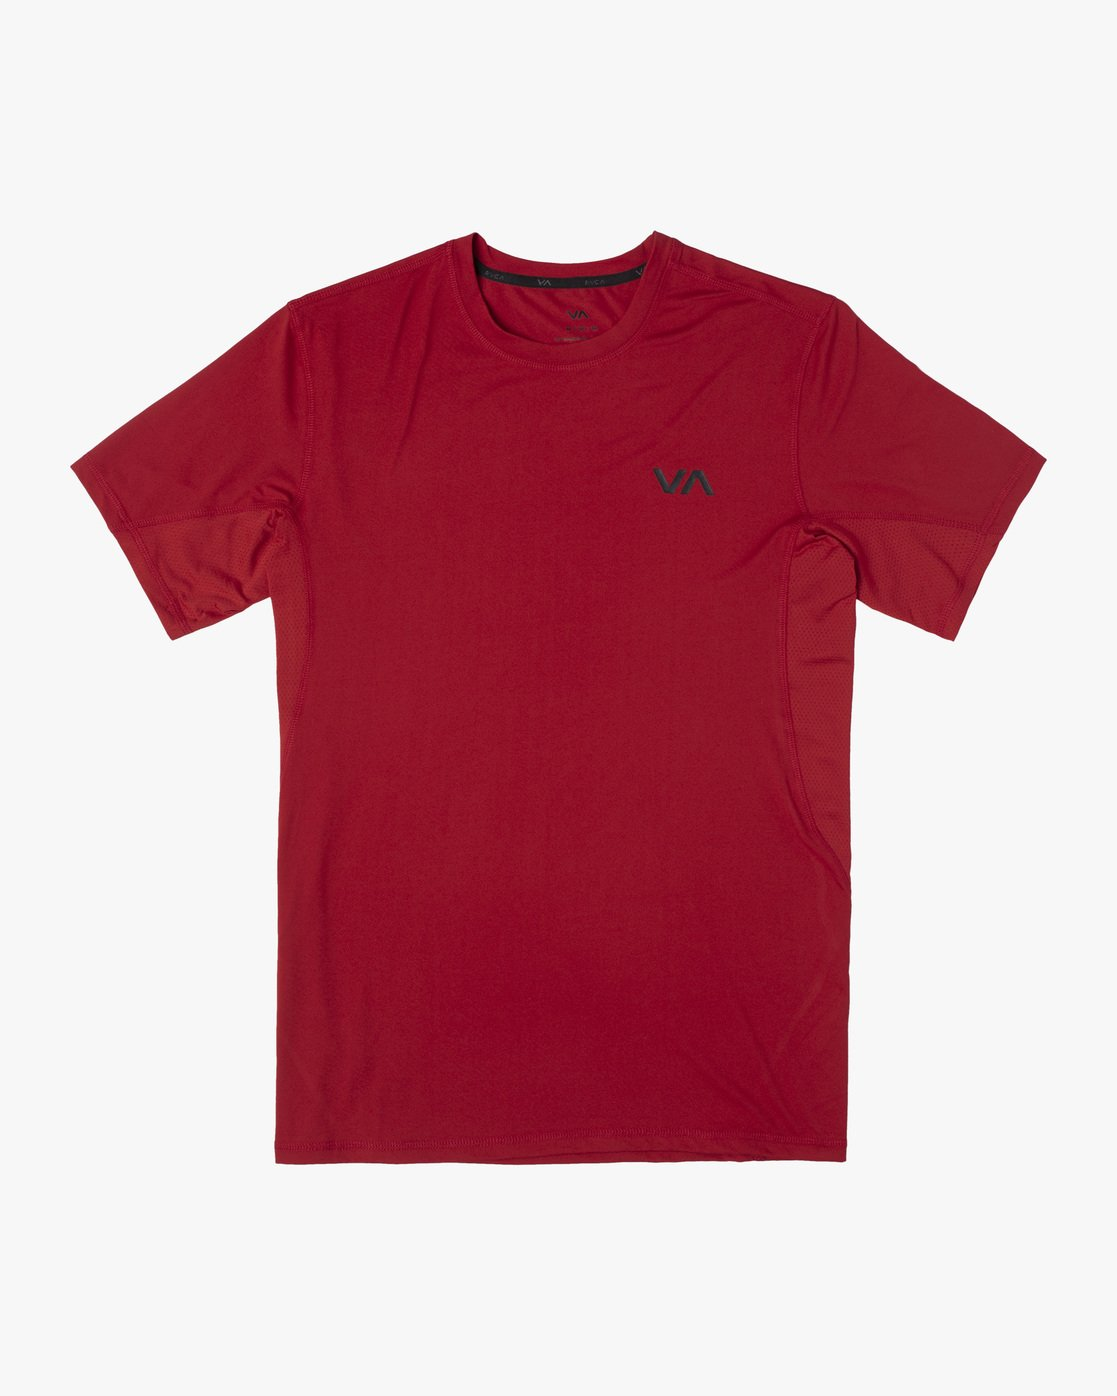 0 SPORT VENT SHORT SLEEVE TEE Red V9021RSV RVCA